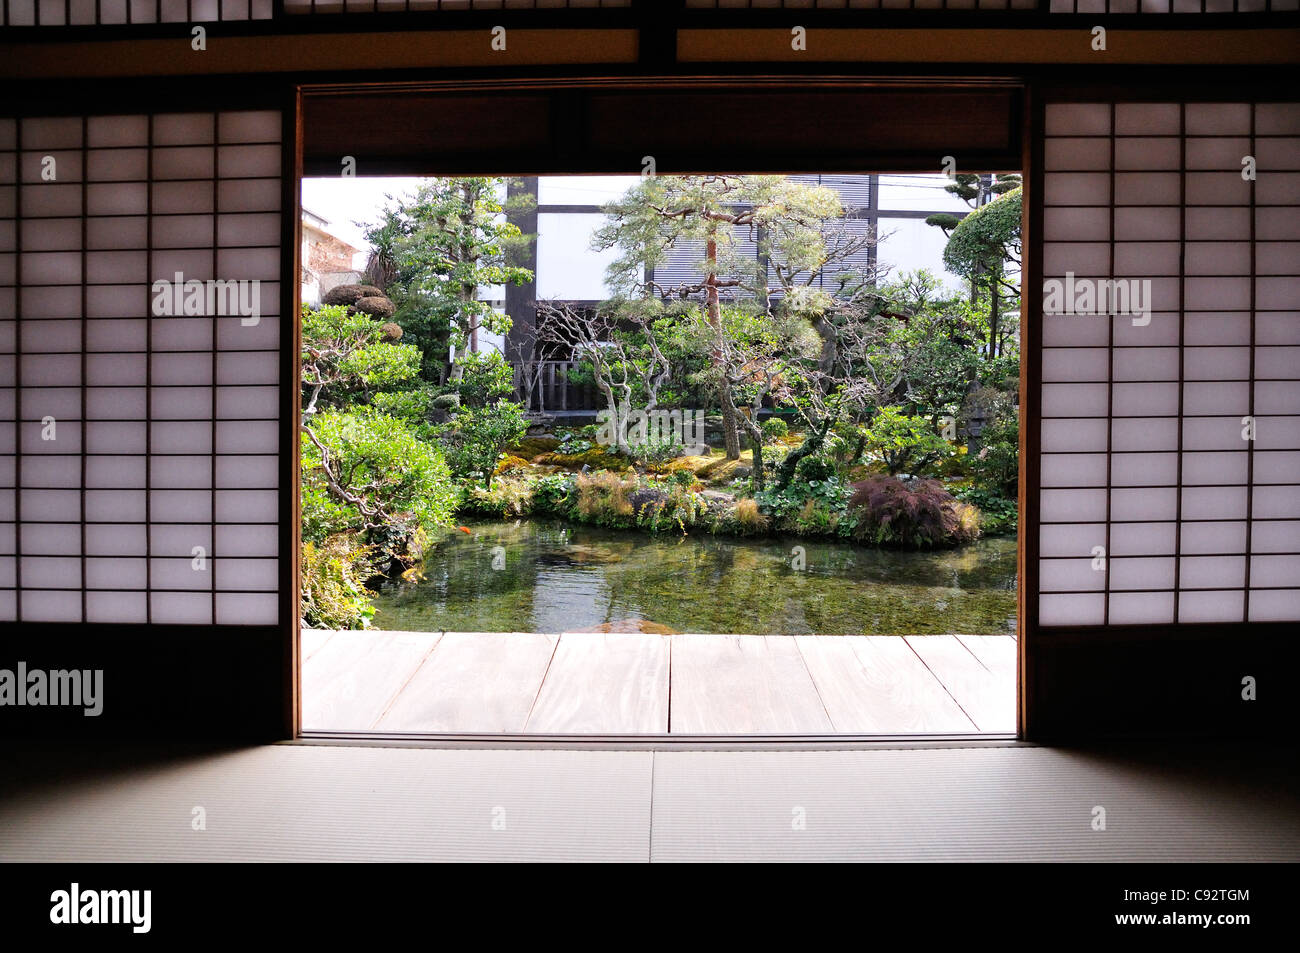 A traditional Japanese house and garden with carp swimming in pond. - Stock Image